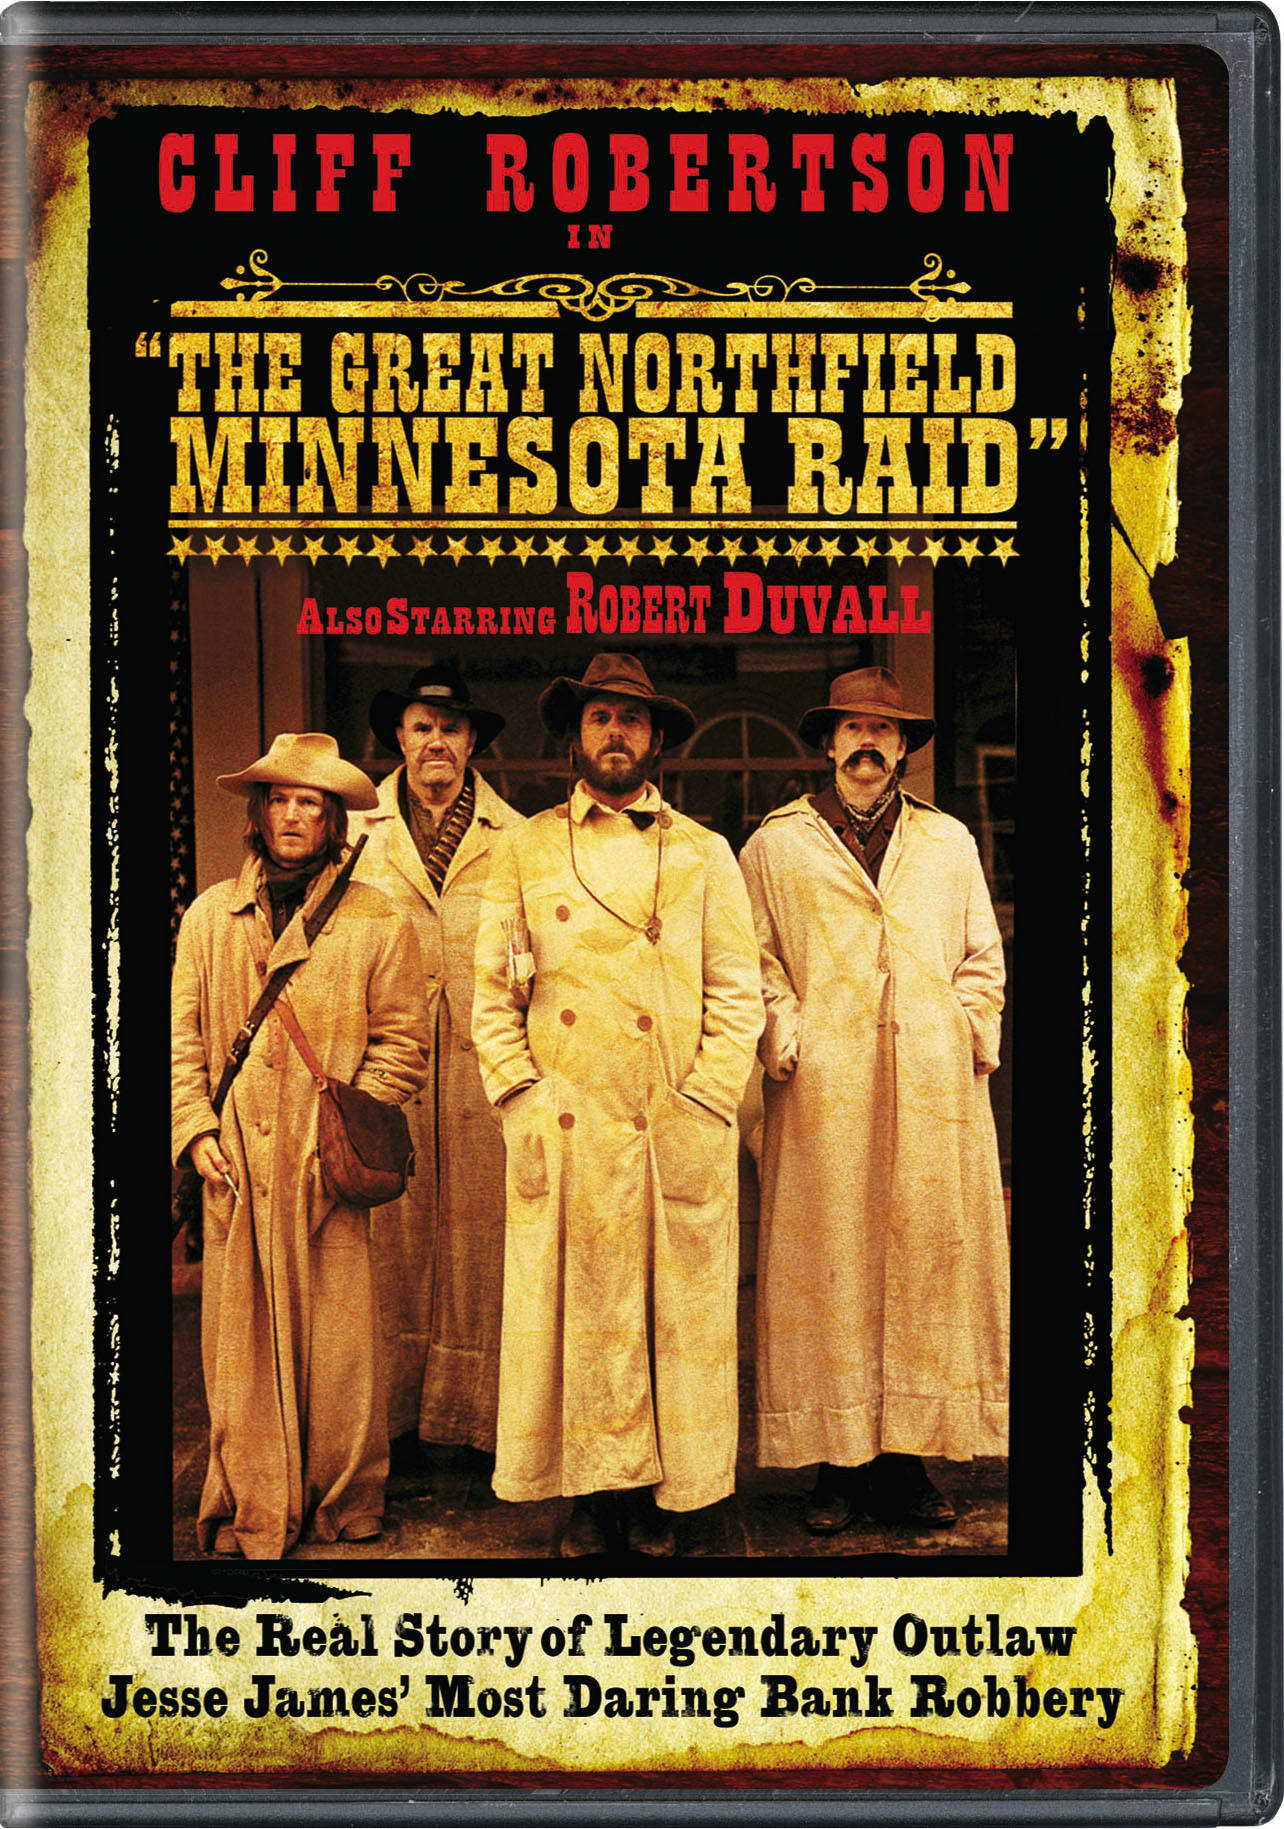 The Great Northfield Minnesota Raid [DVD]